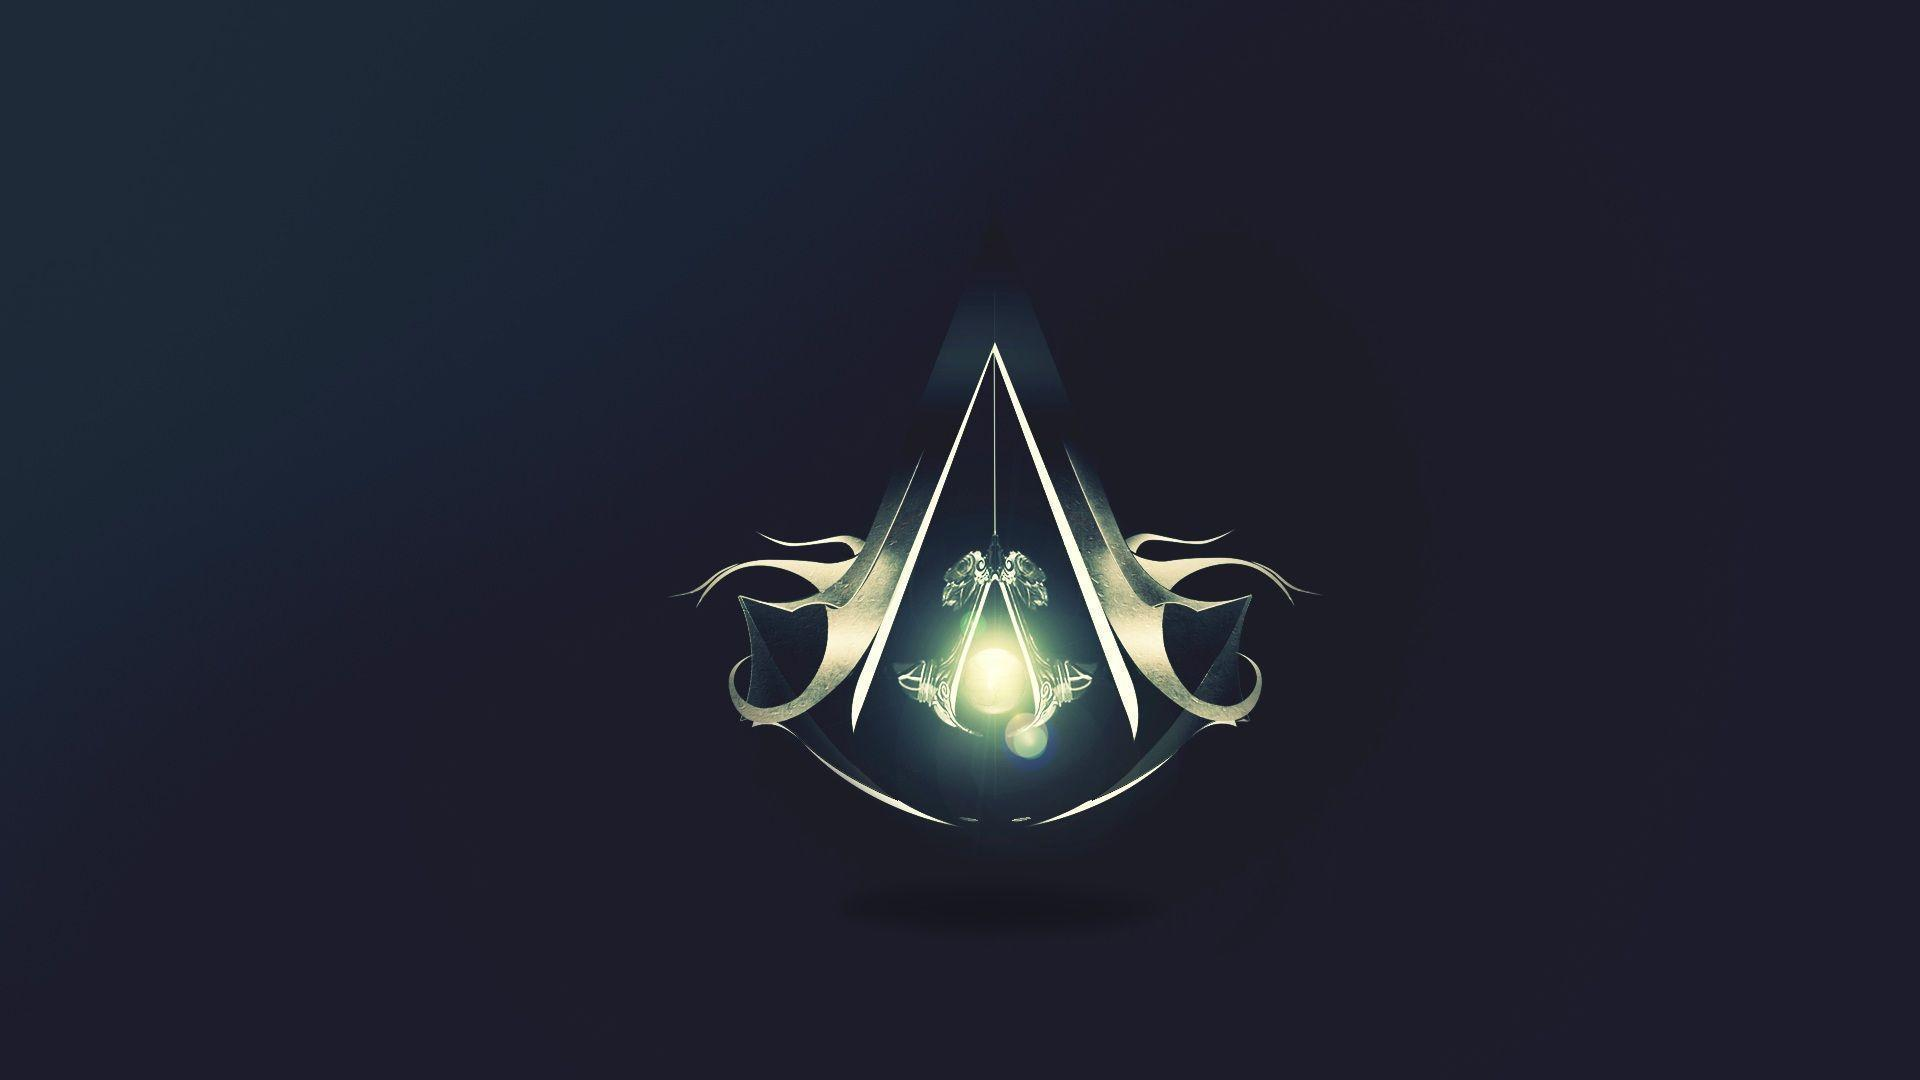 Wallpapers For > Assassins Creed Logo Wallpapers Hd